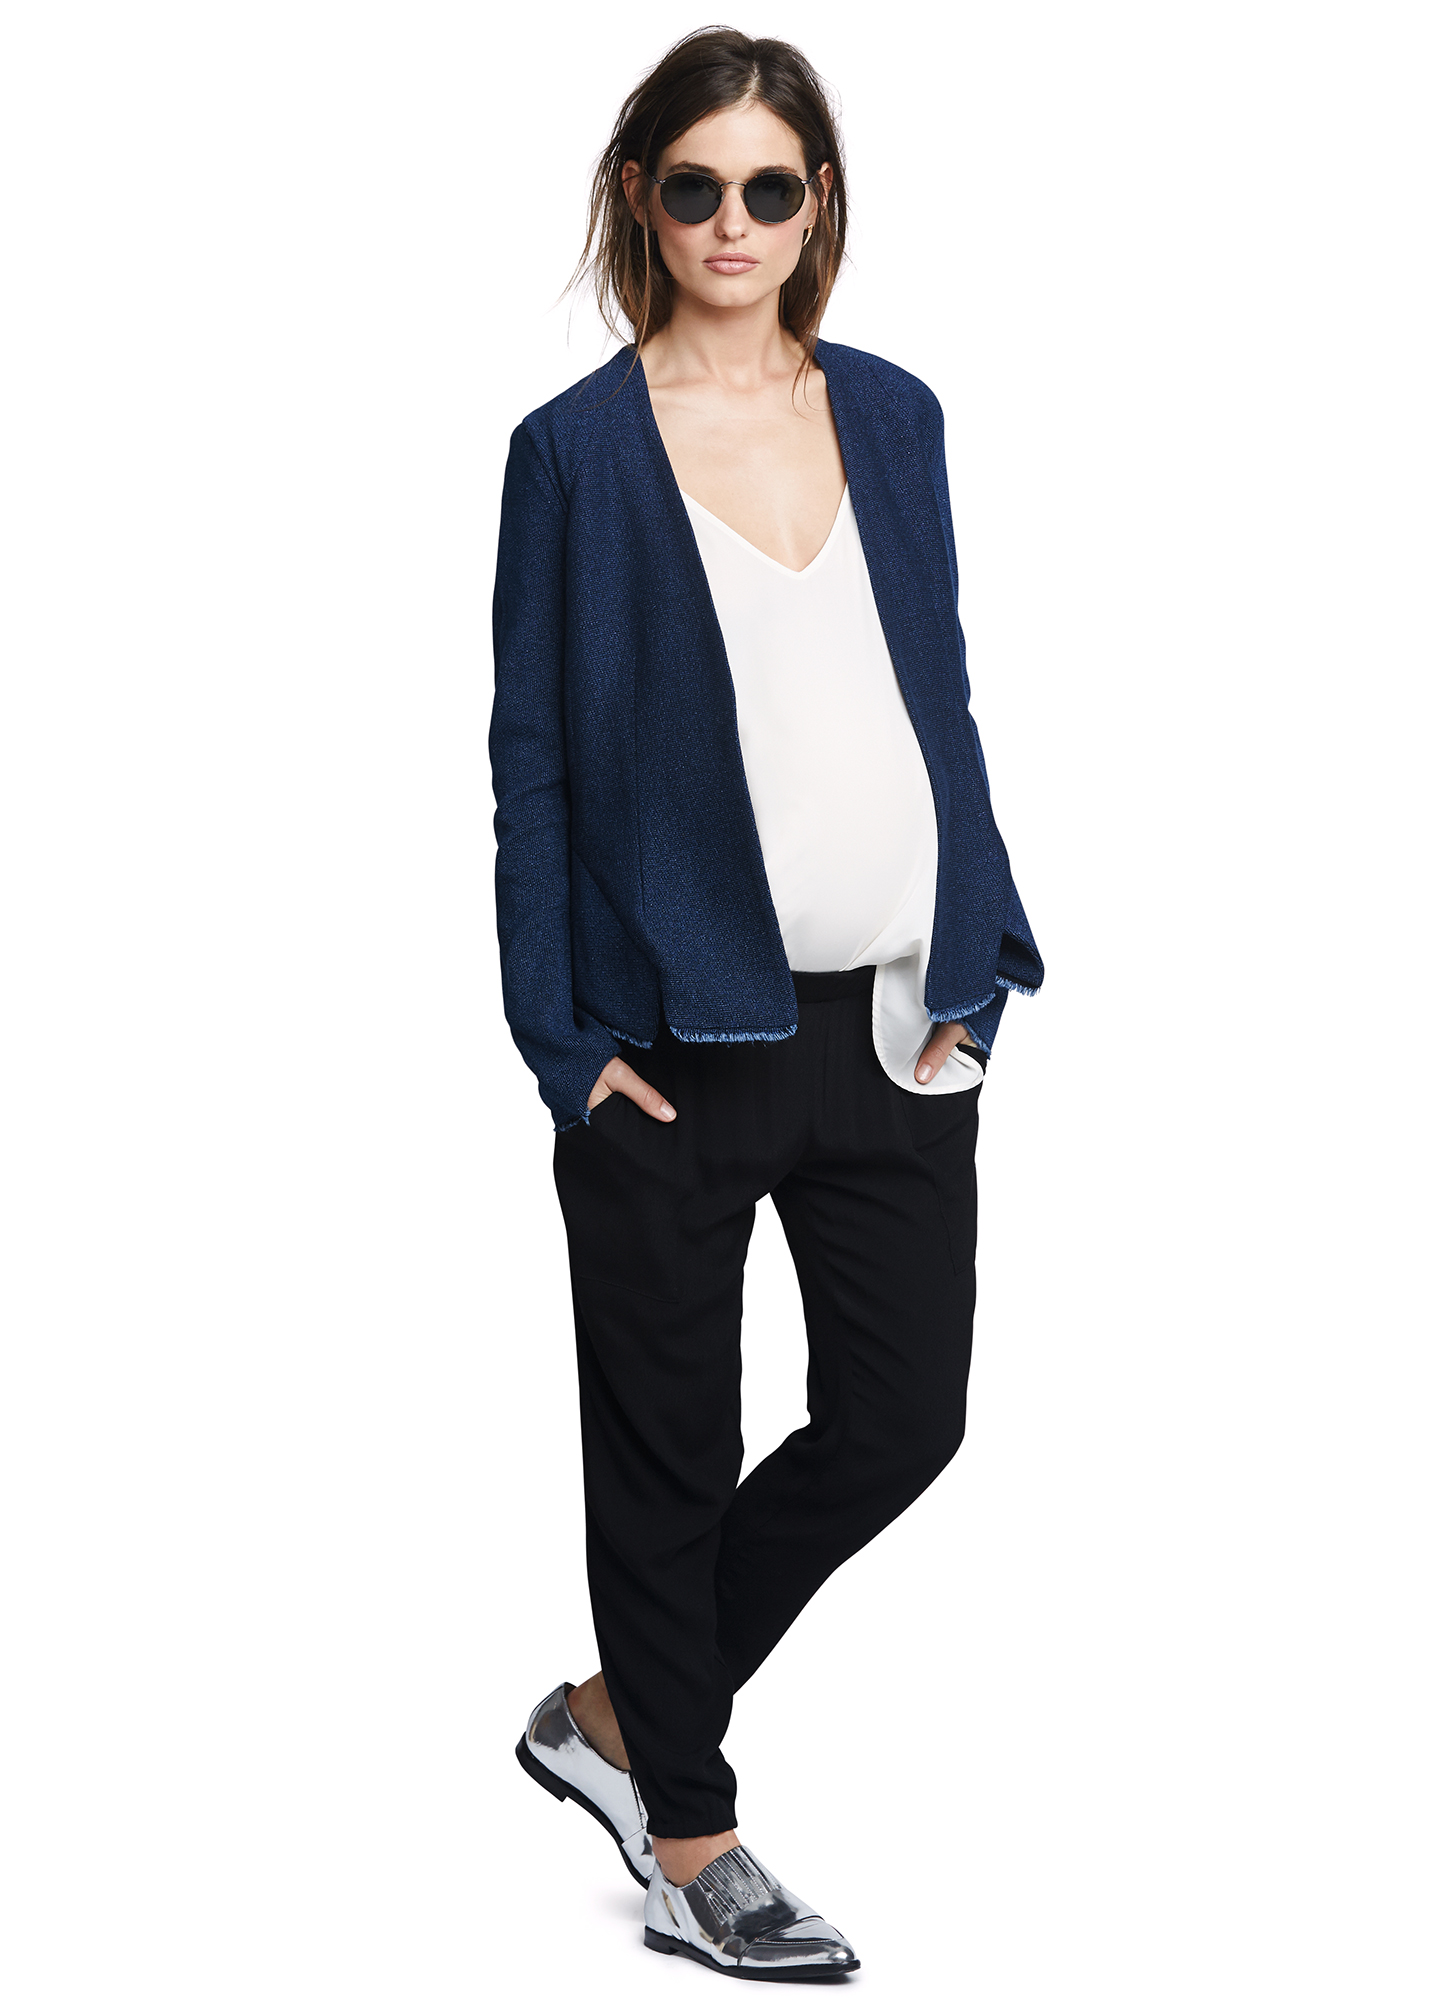 The Tabitha Maternity Jacket